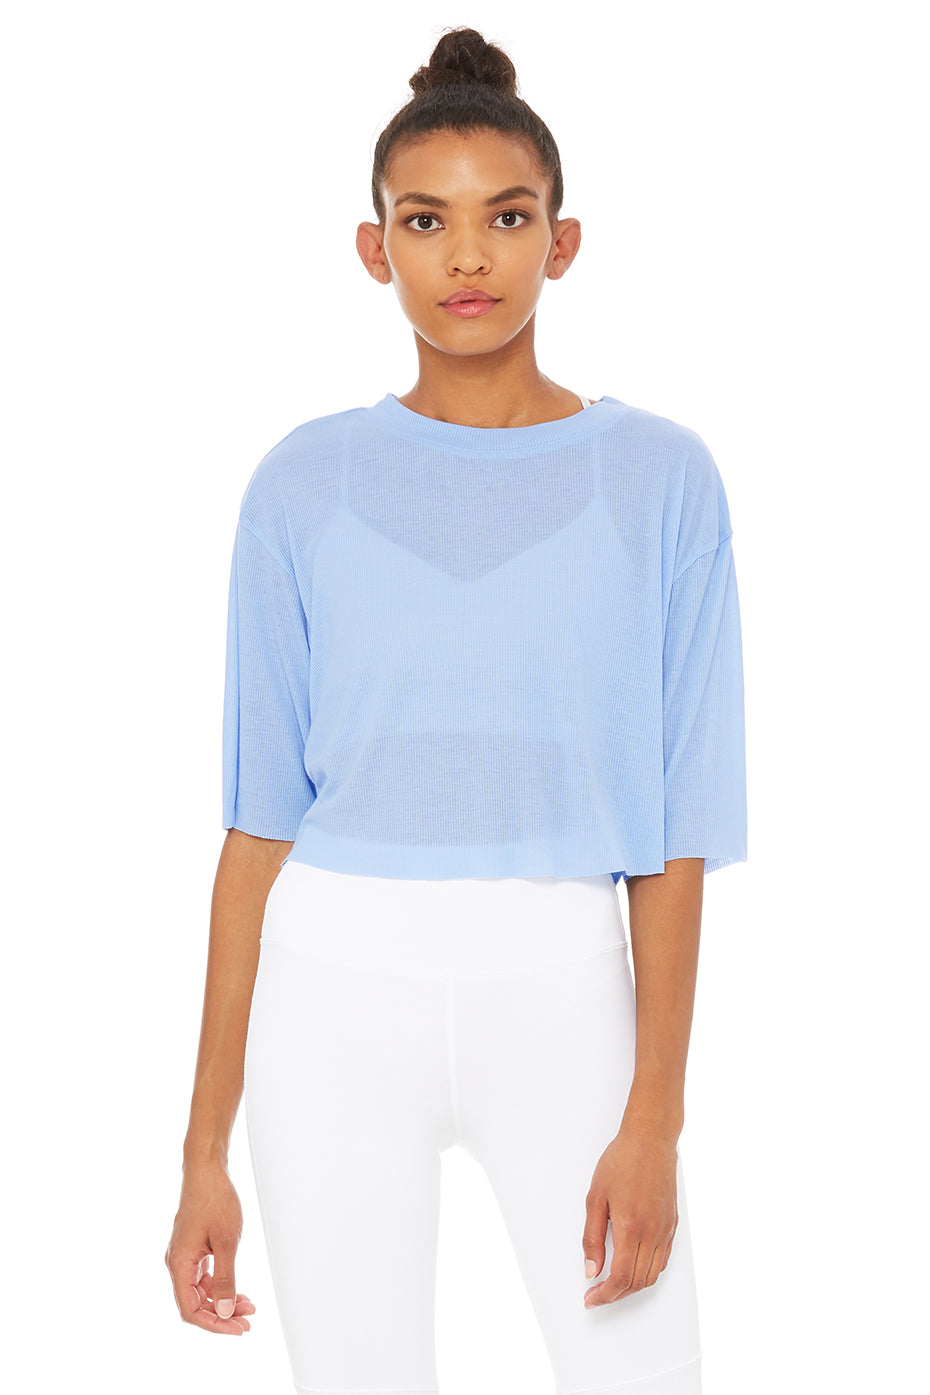 Abyss Short Sleeve Top